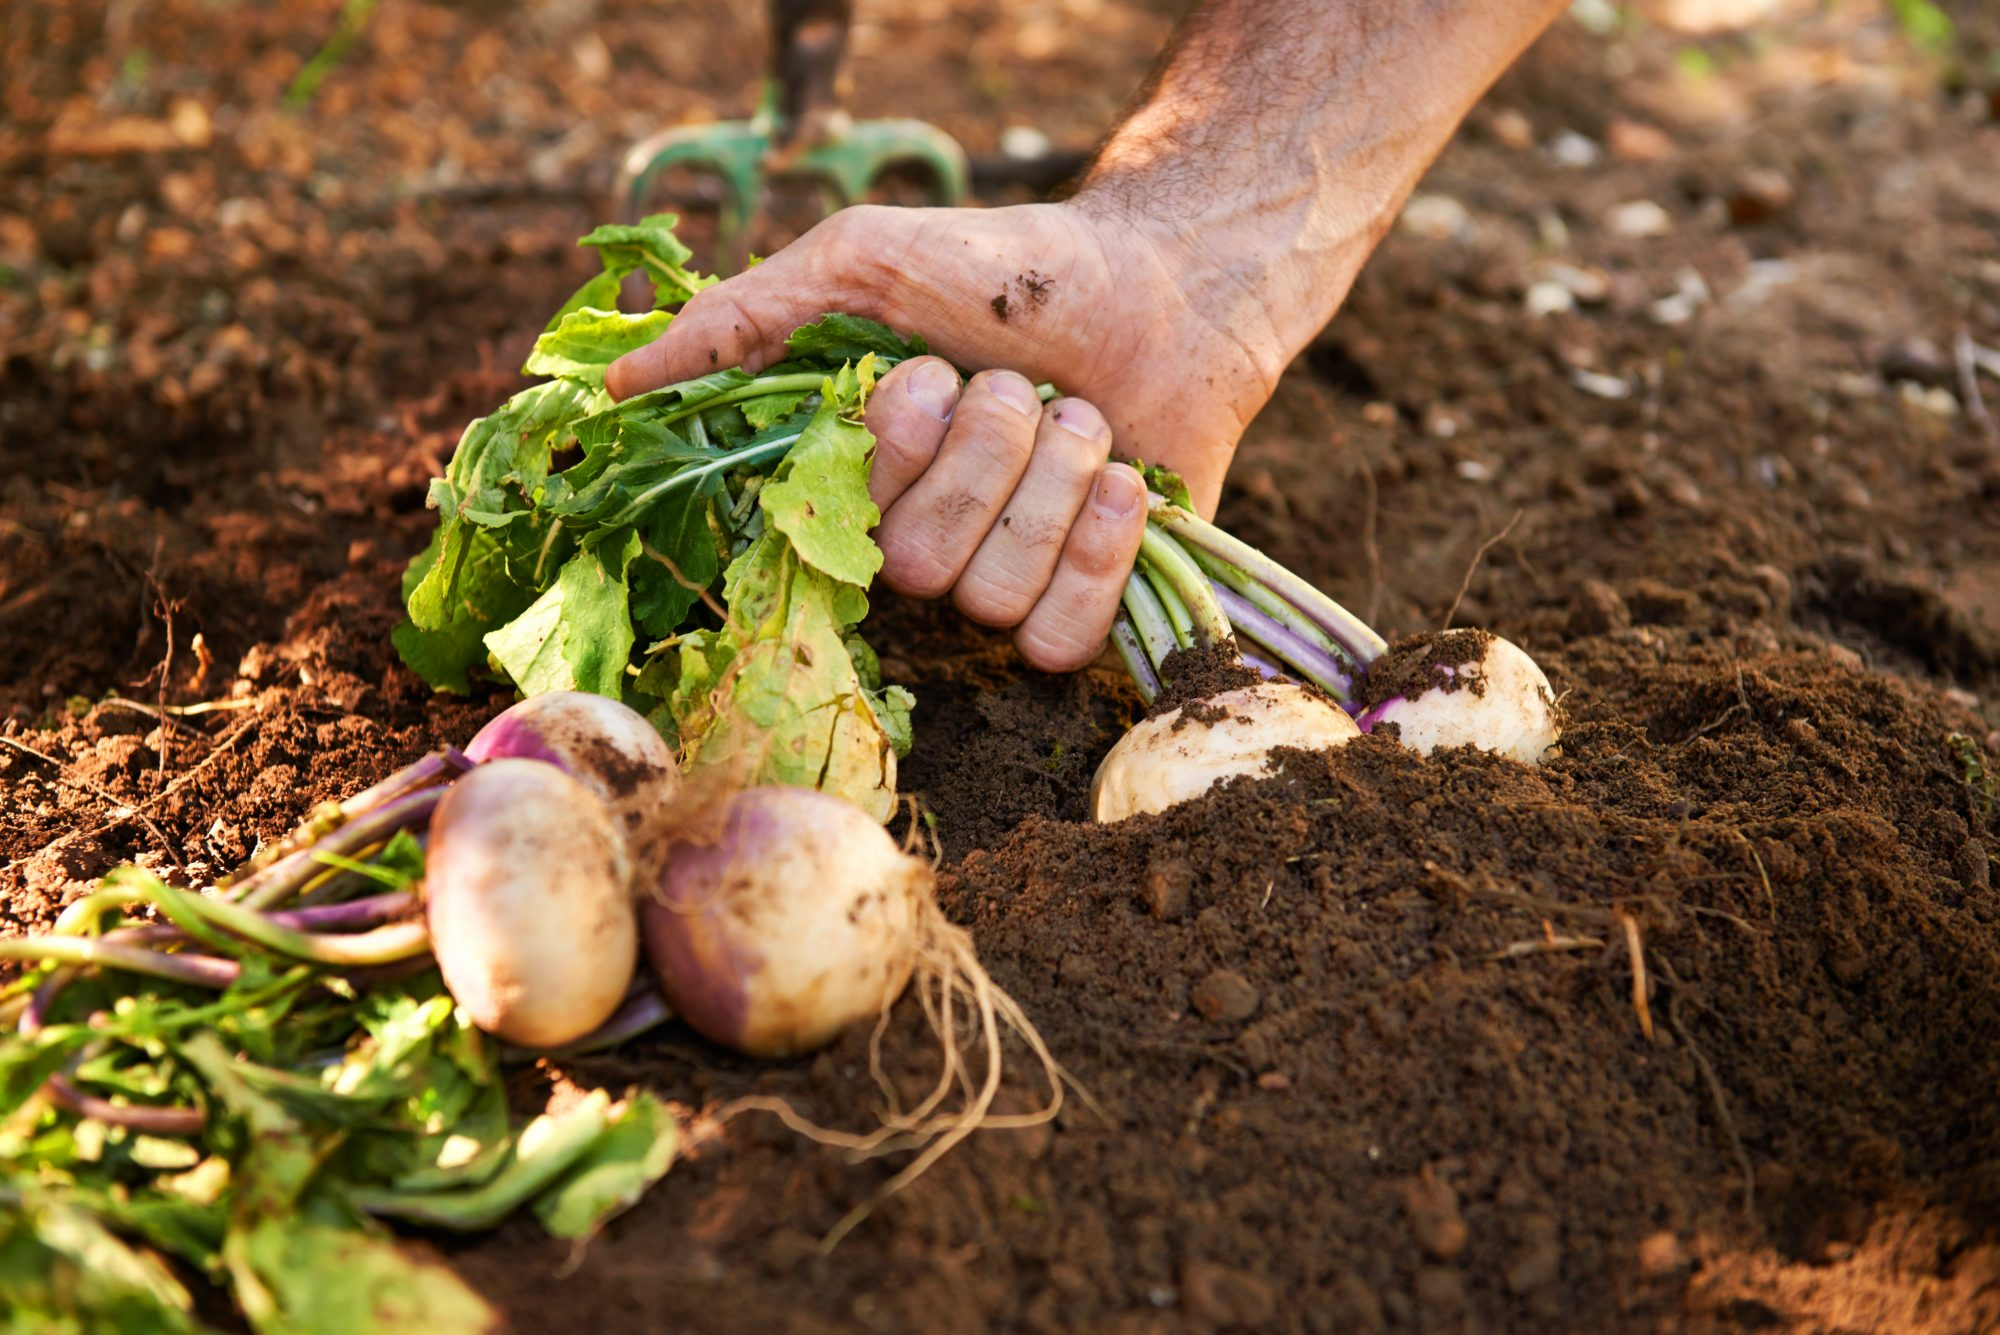 person pulling vegetables from soil